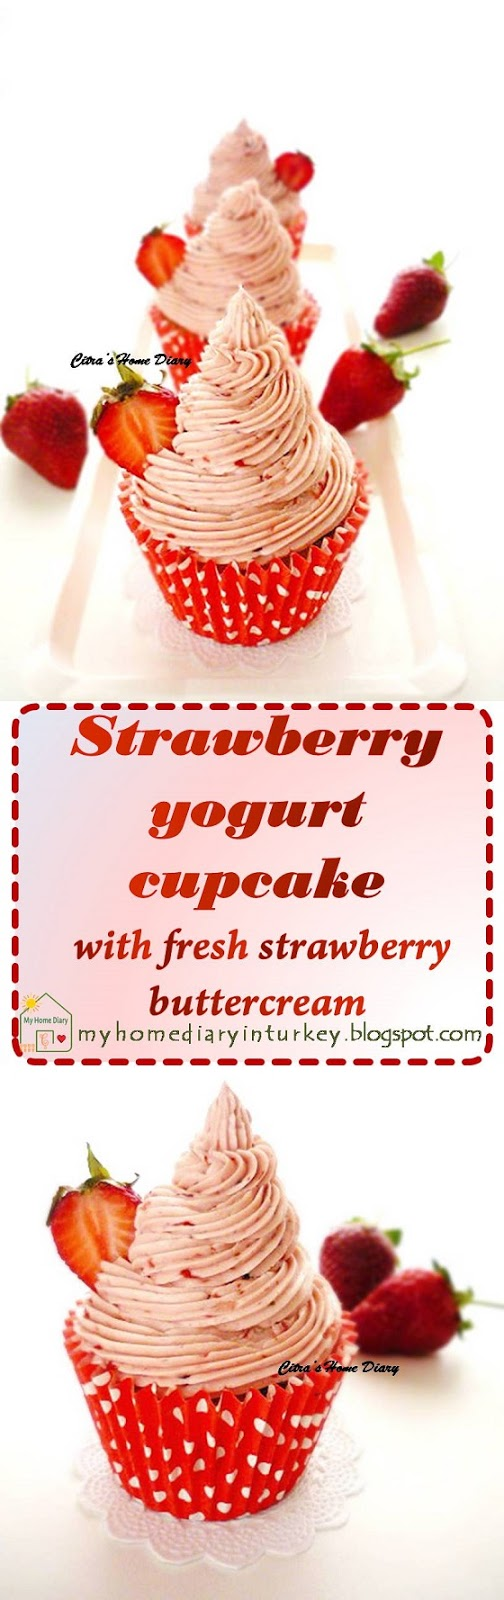 Strawberry yogurt cupcake with strawberry buttercream